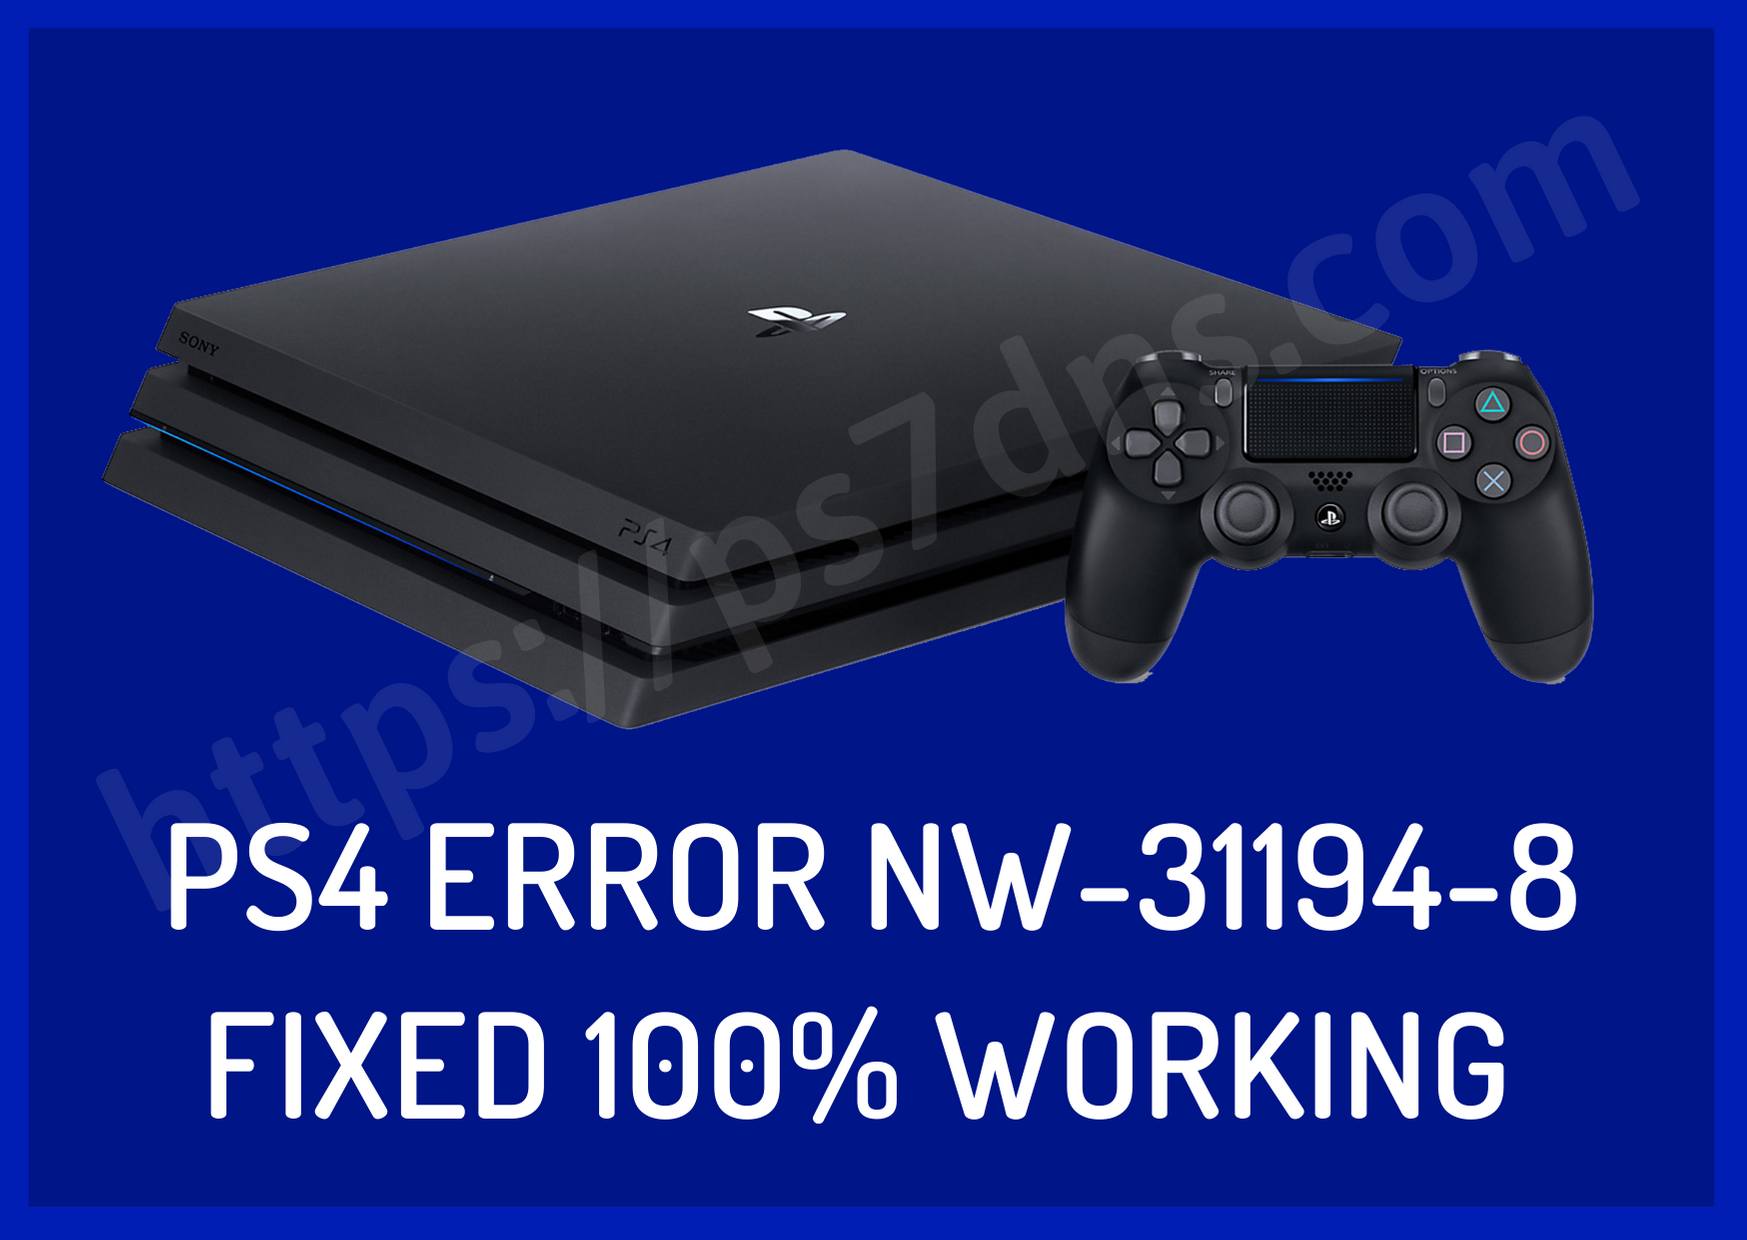 PS4 Error NW-31194-8 Fixed 100% Working